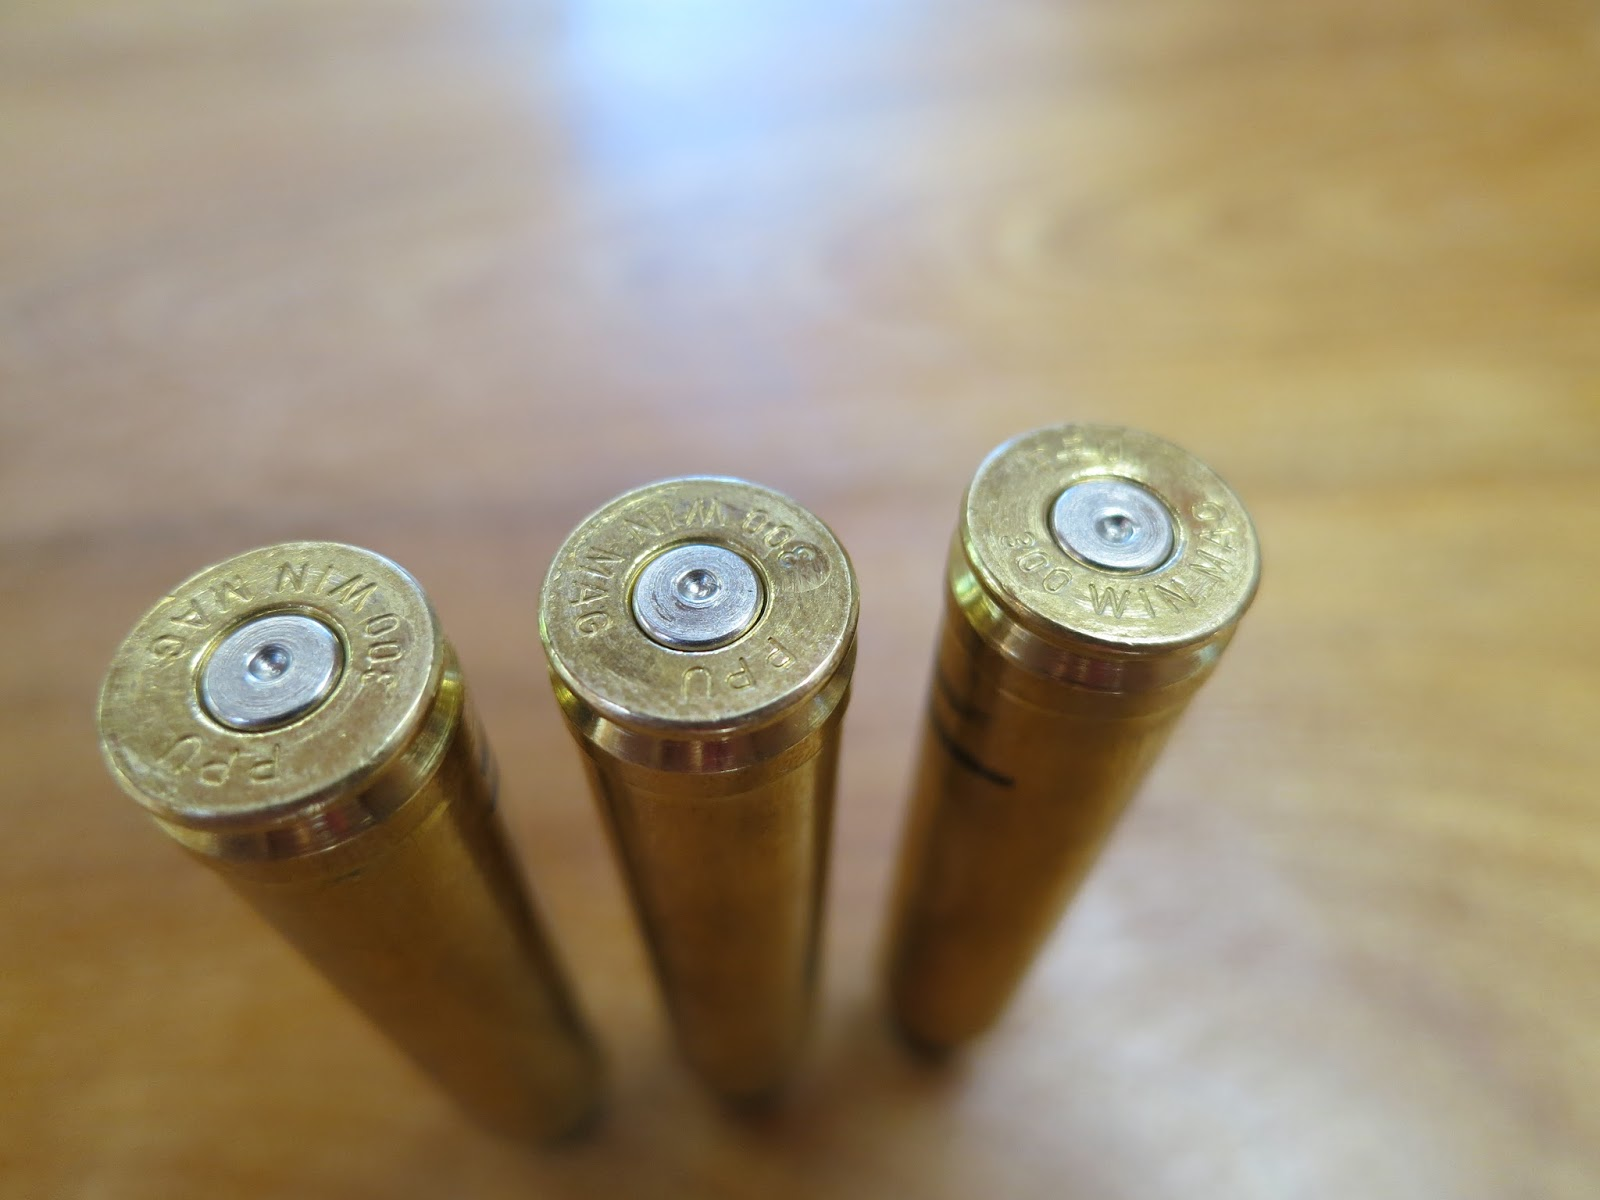 Reloading for 300 Win Mag: July 2015